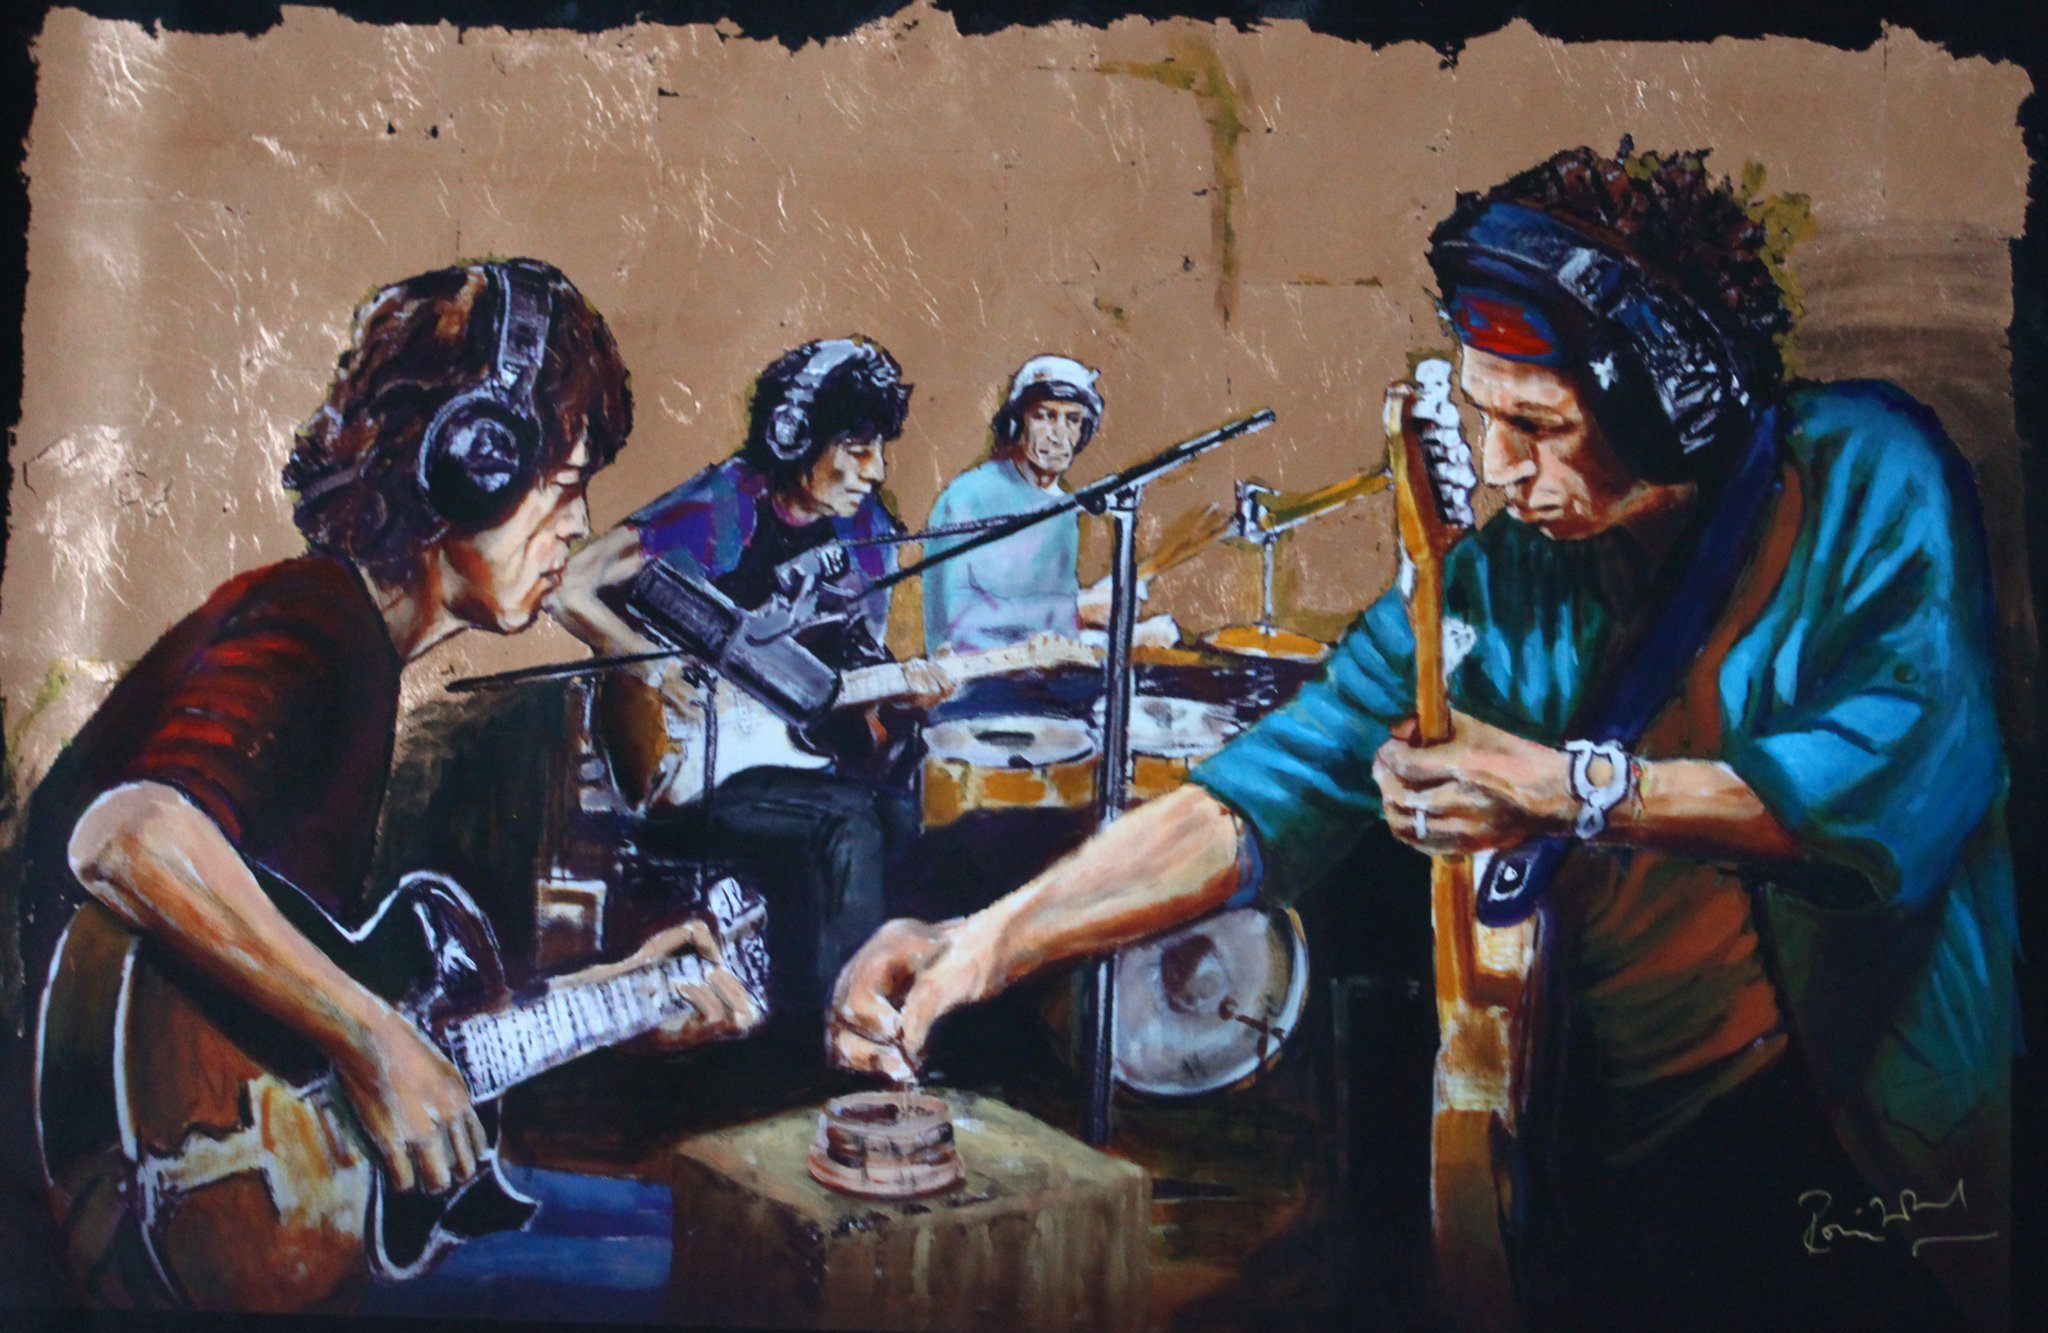 2013-04-24-ronnie-wood-painting.jpg